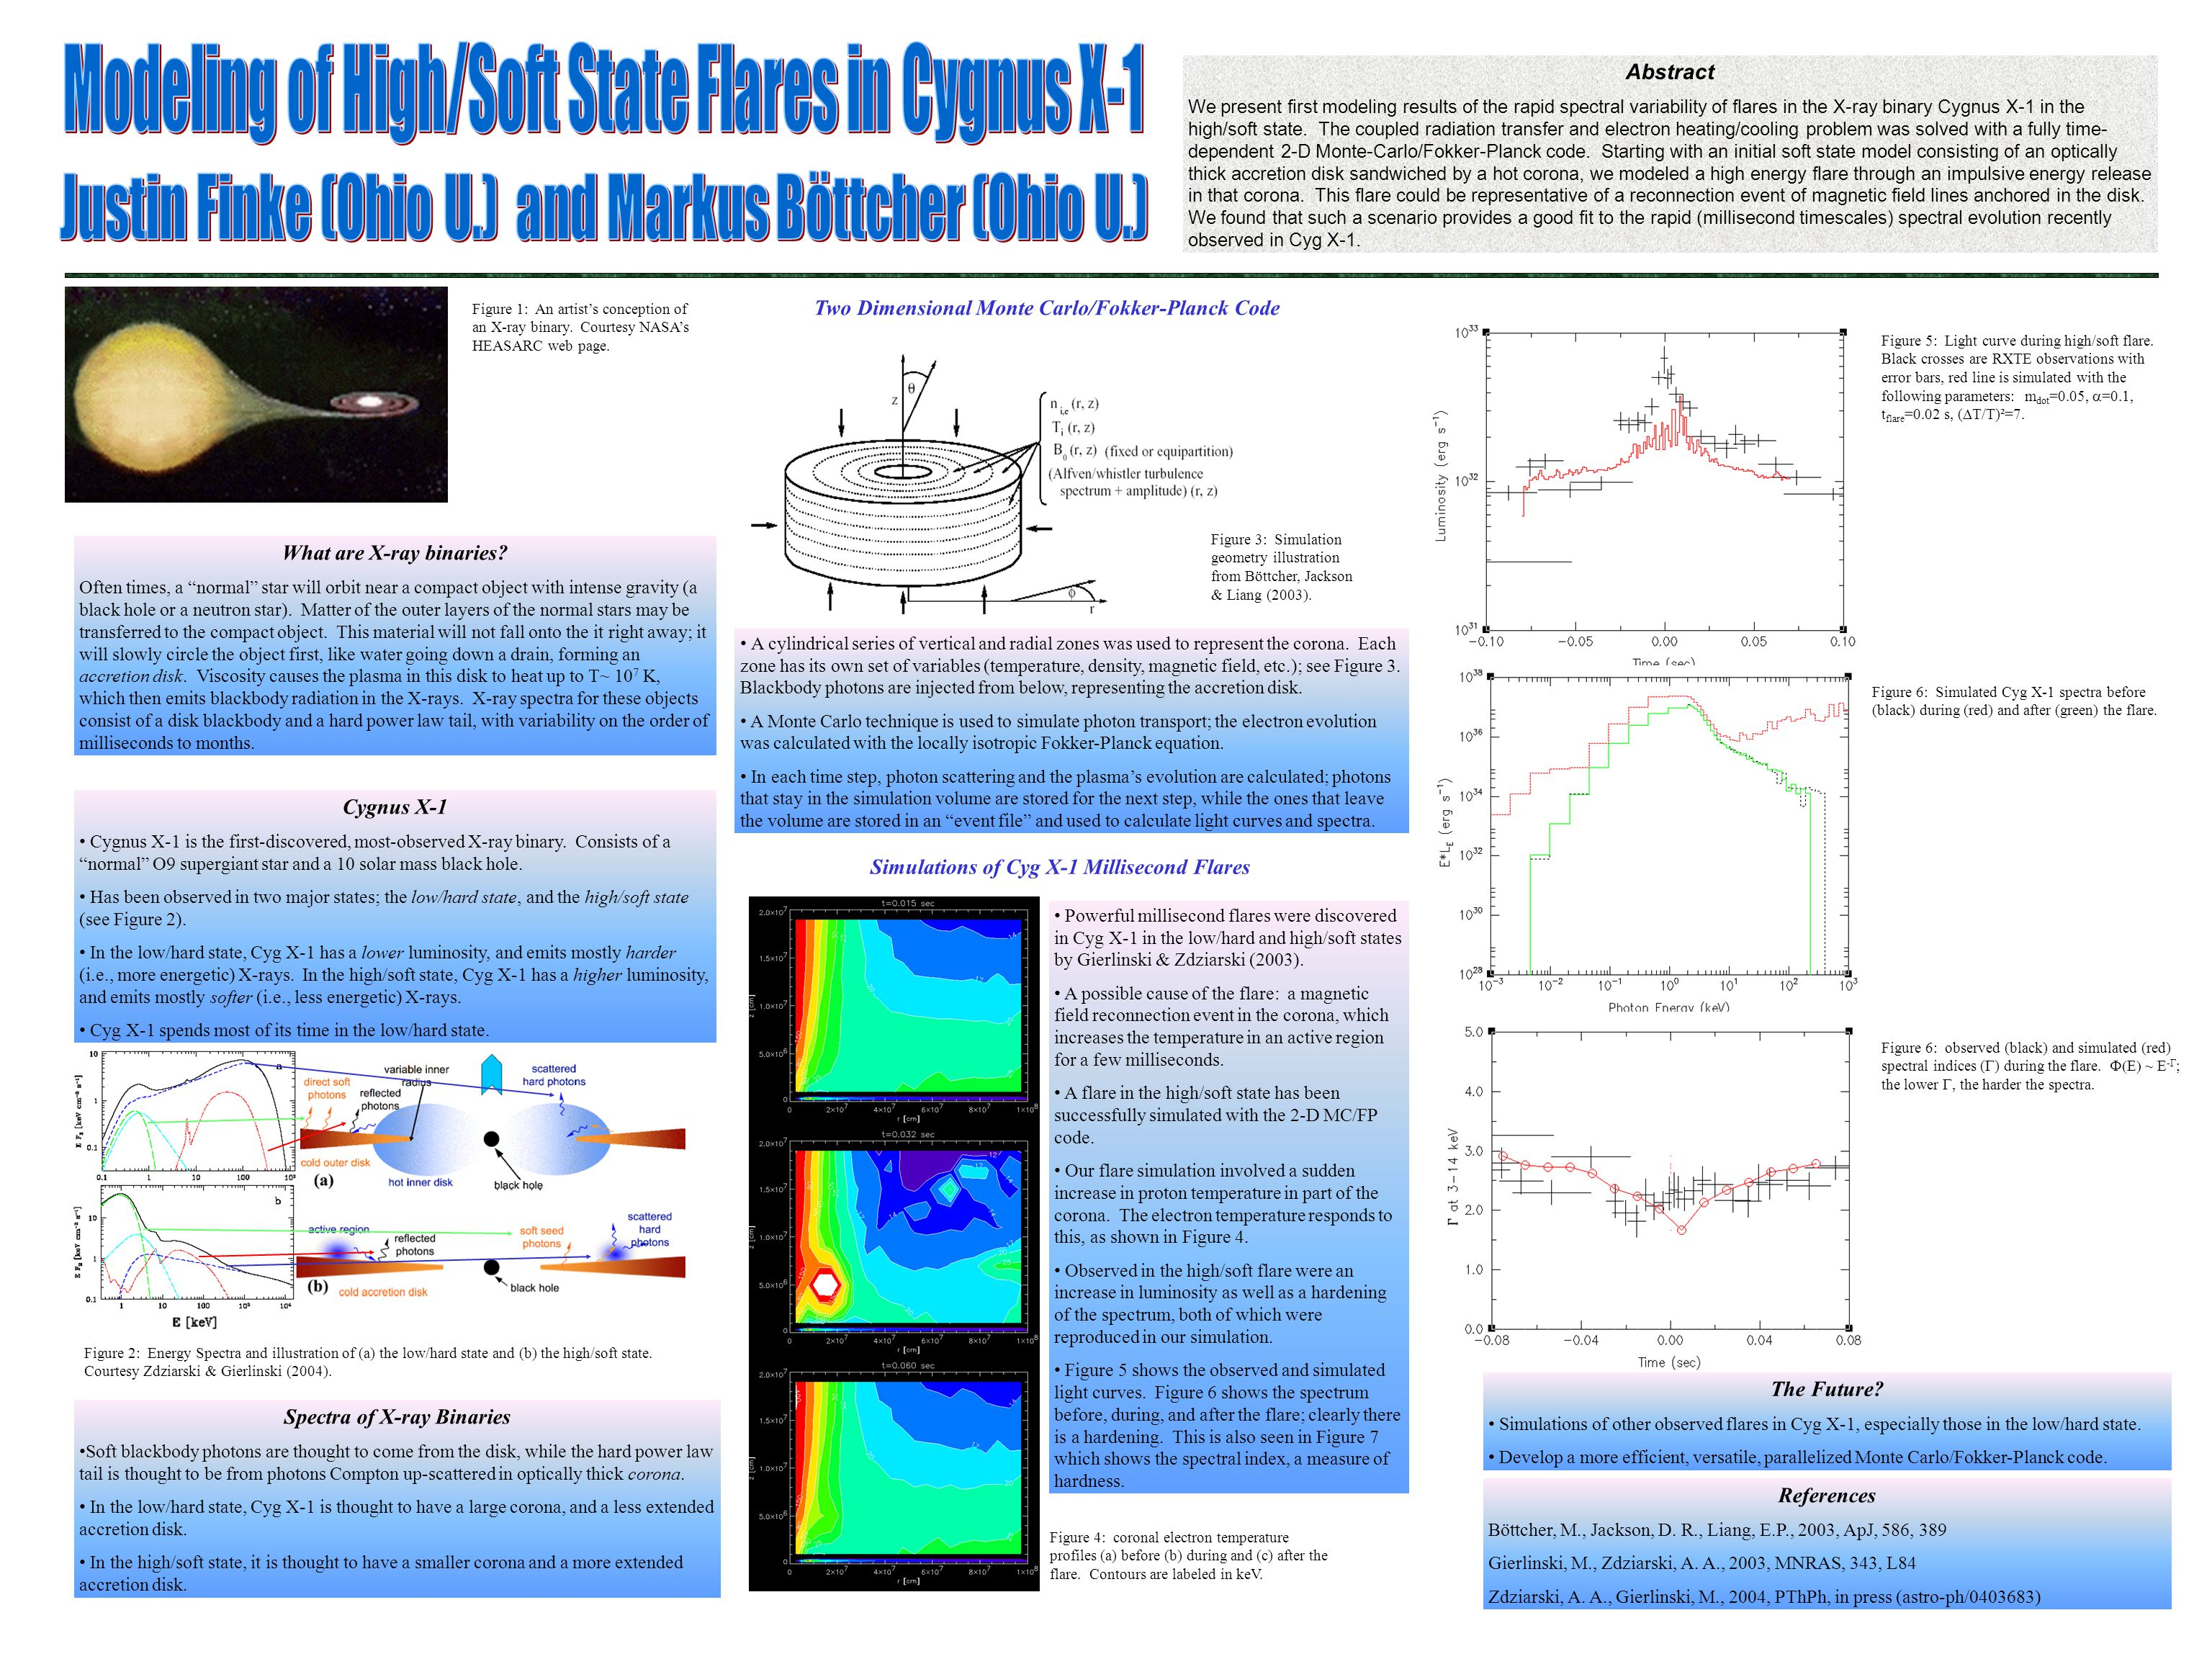 Abstract We present first modeling results of the rapid spectral variability of flares in the X-ray binary Cygnus X-1 in the high/soft state.